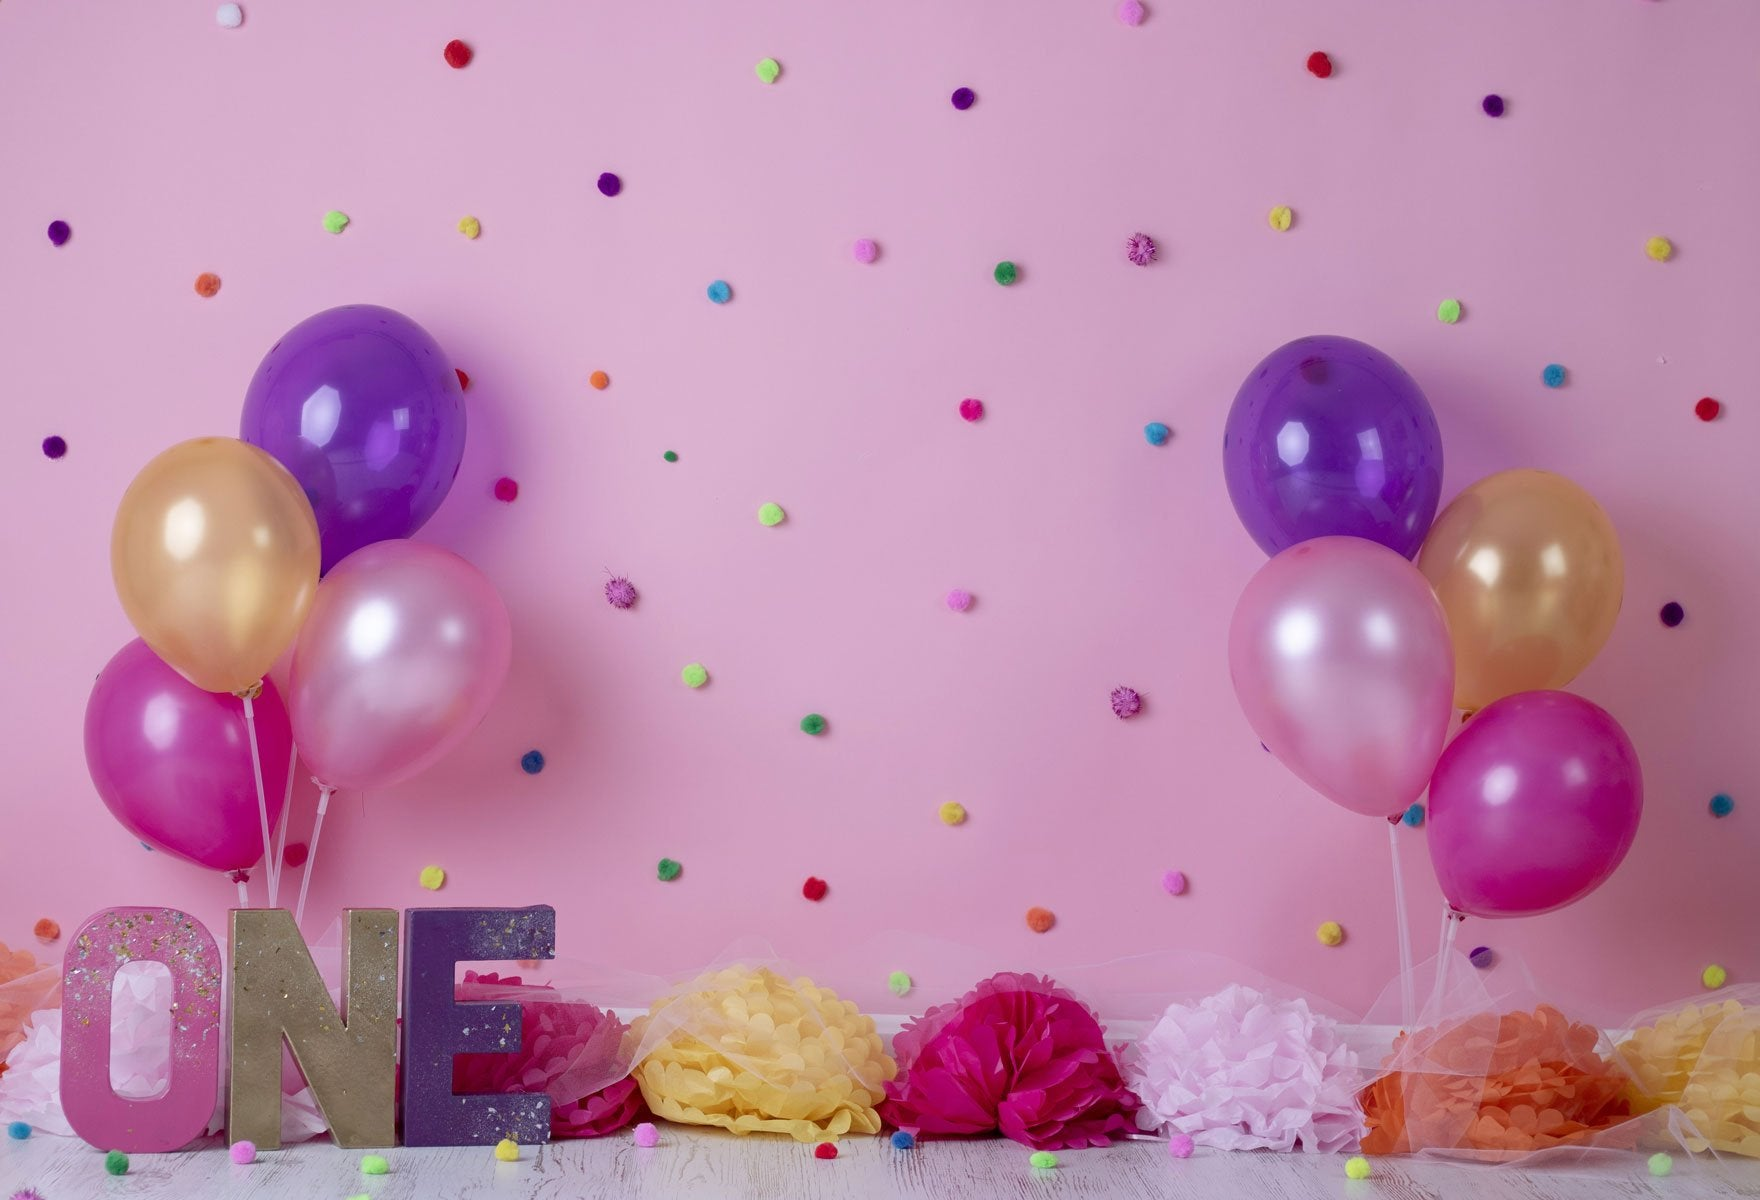 Load image into Gallery viewer, Kate Balloons And Decorations Birthday Children Backdrop for Photography Designed by Erin Larkins - Kate backdrops UK